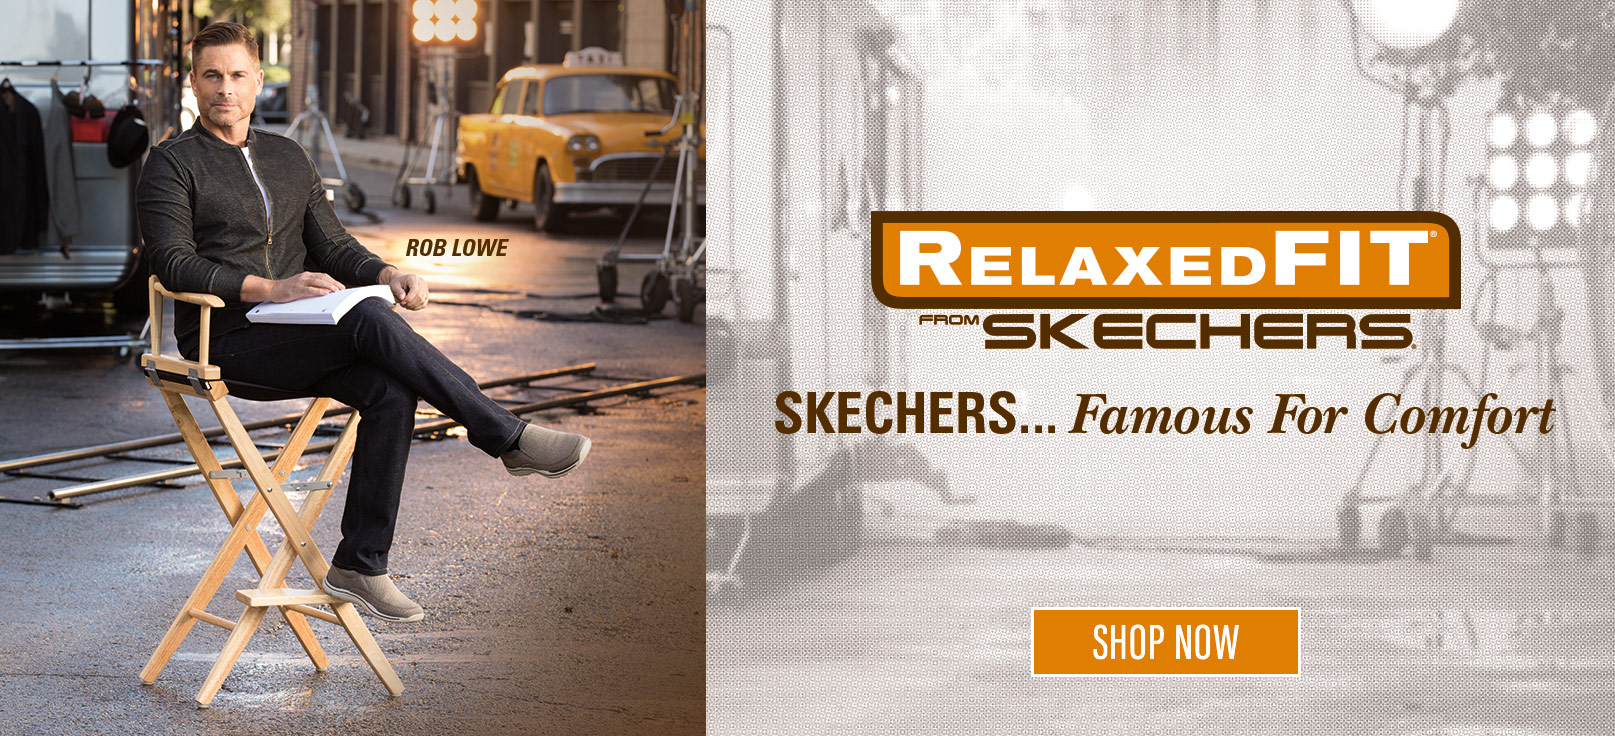 Men's Relaxed Fit shoes as worn by Rob Lowe